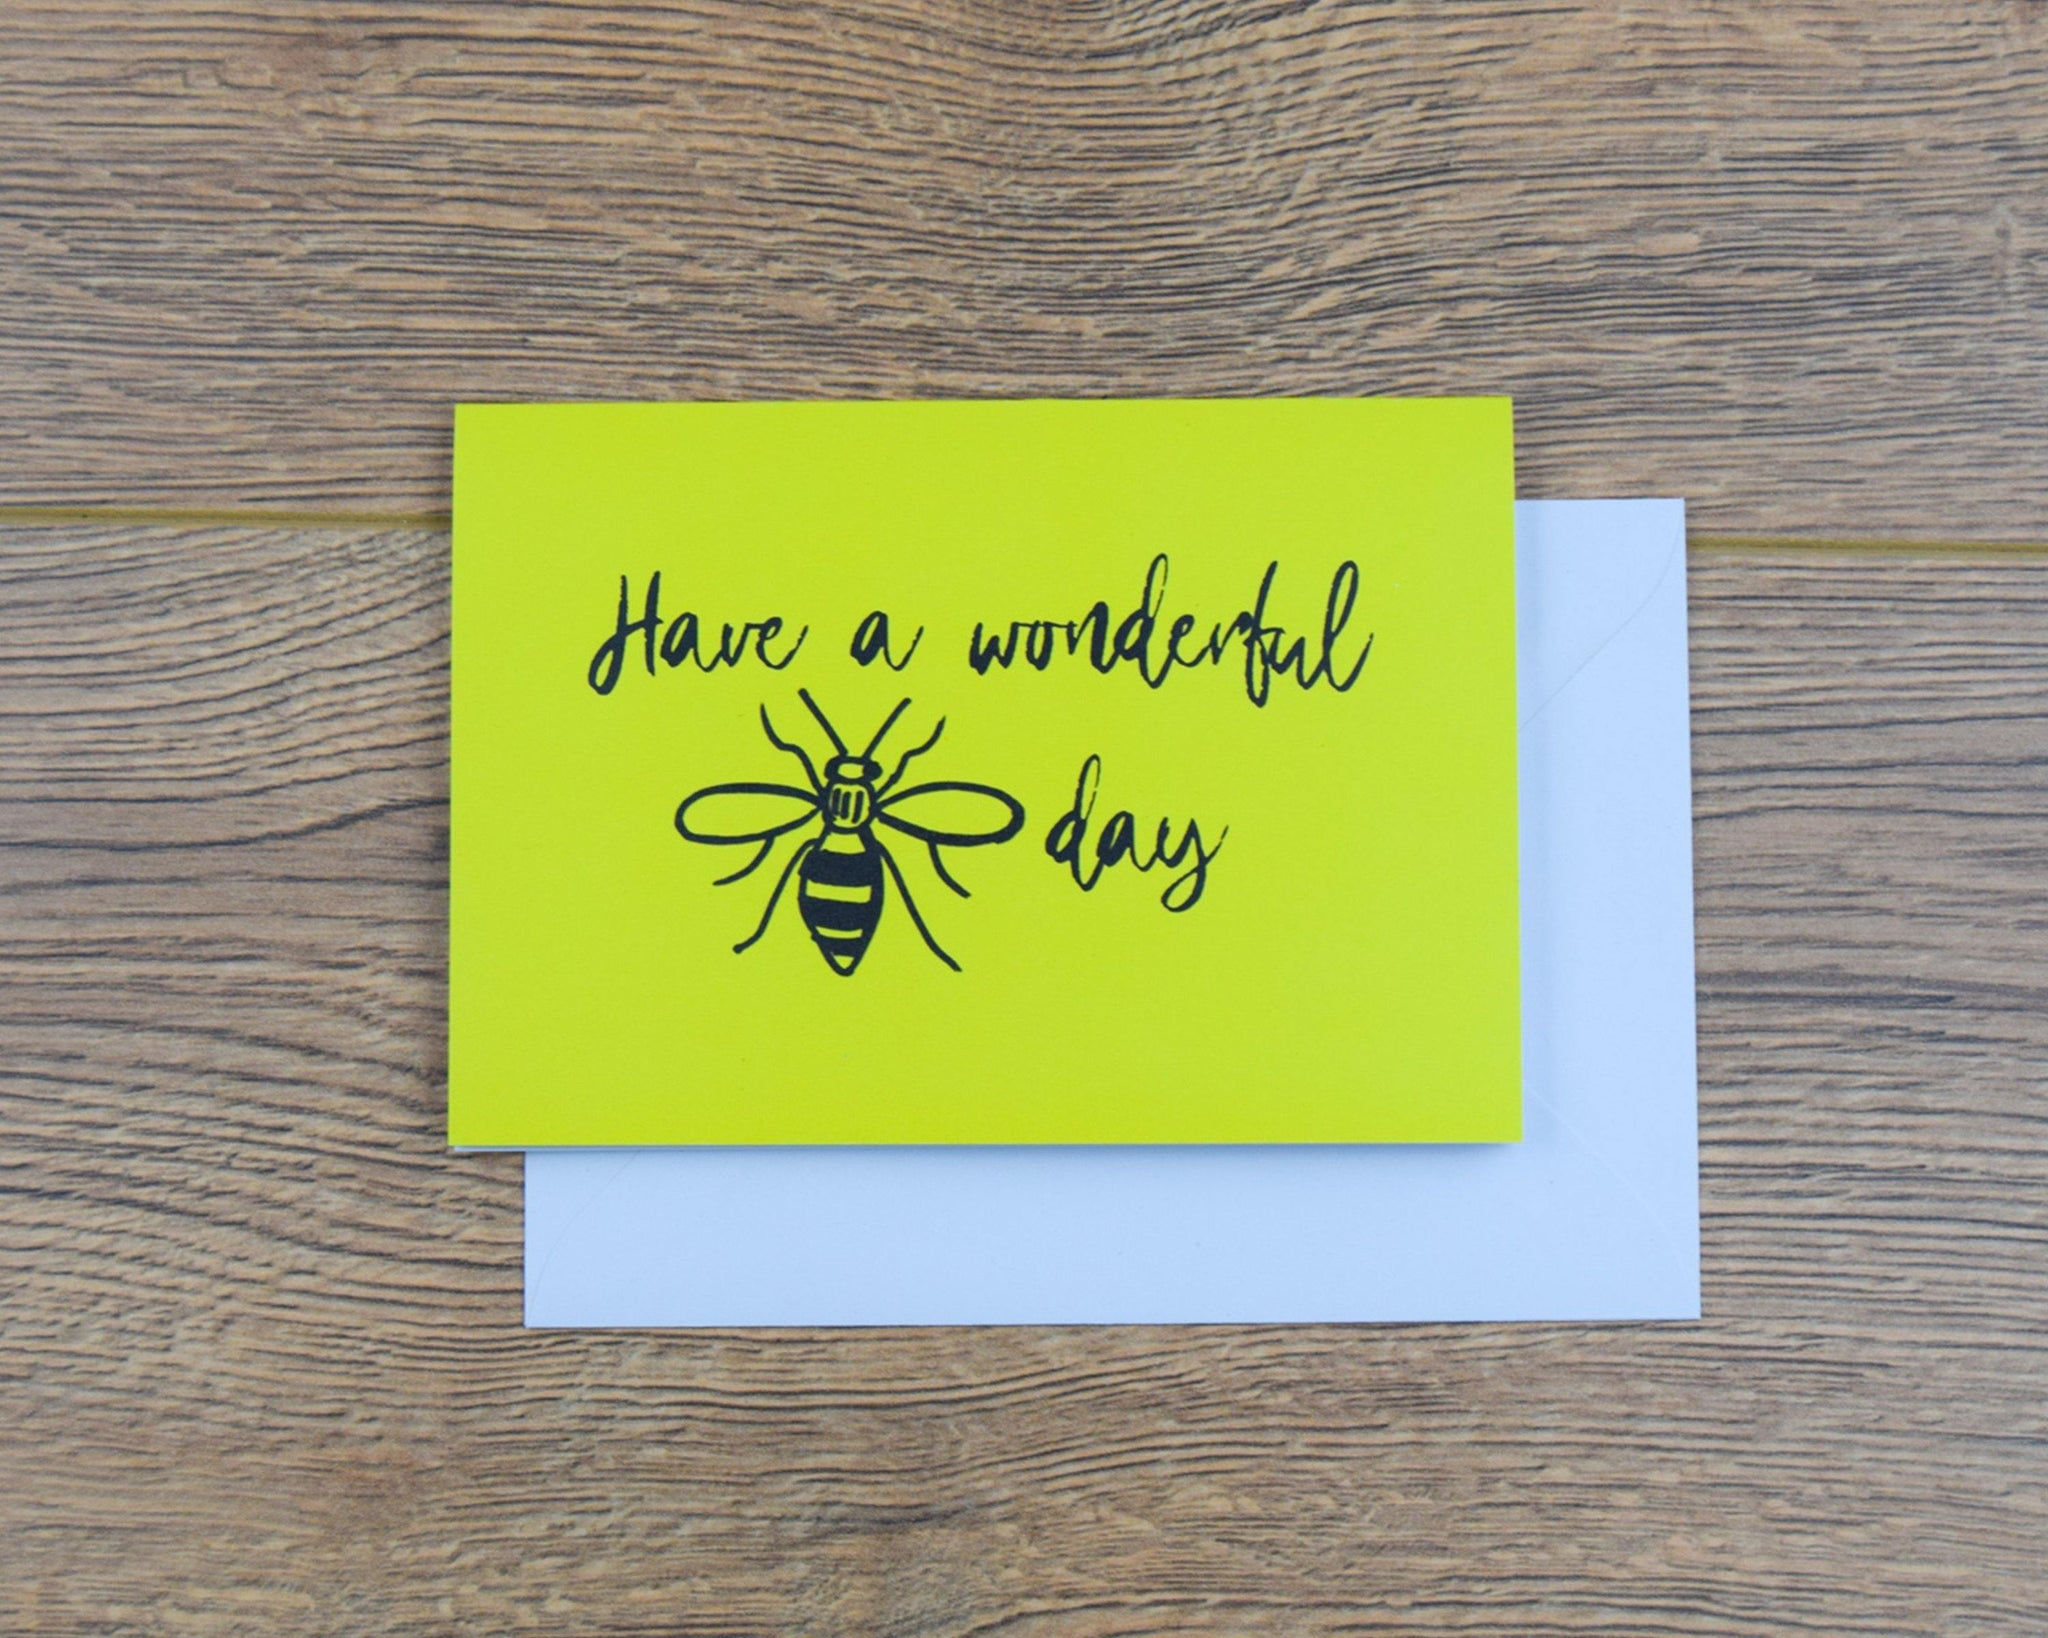 HAVE A WONDERFUL DAY GREETING CARD